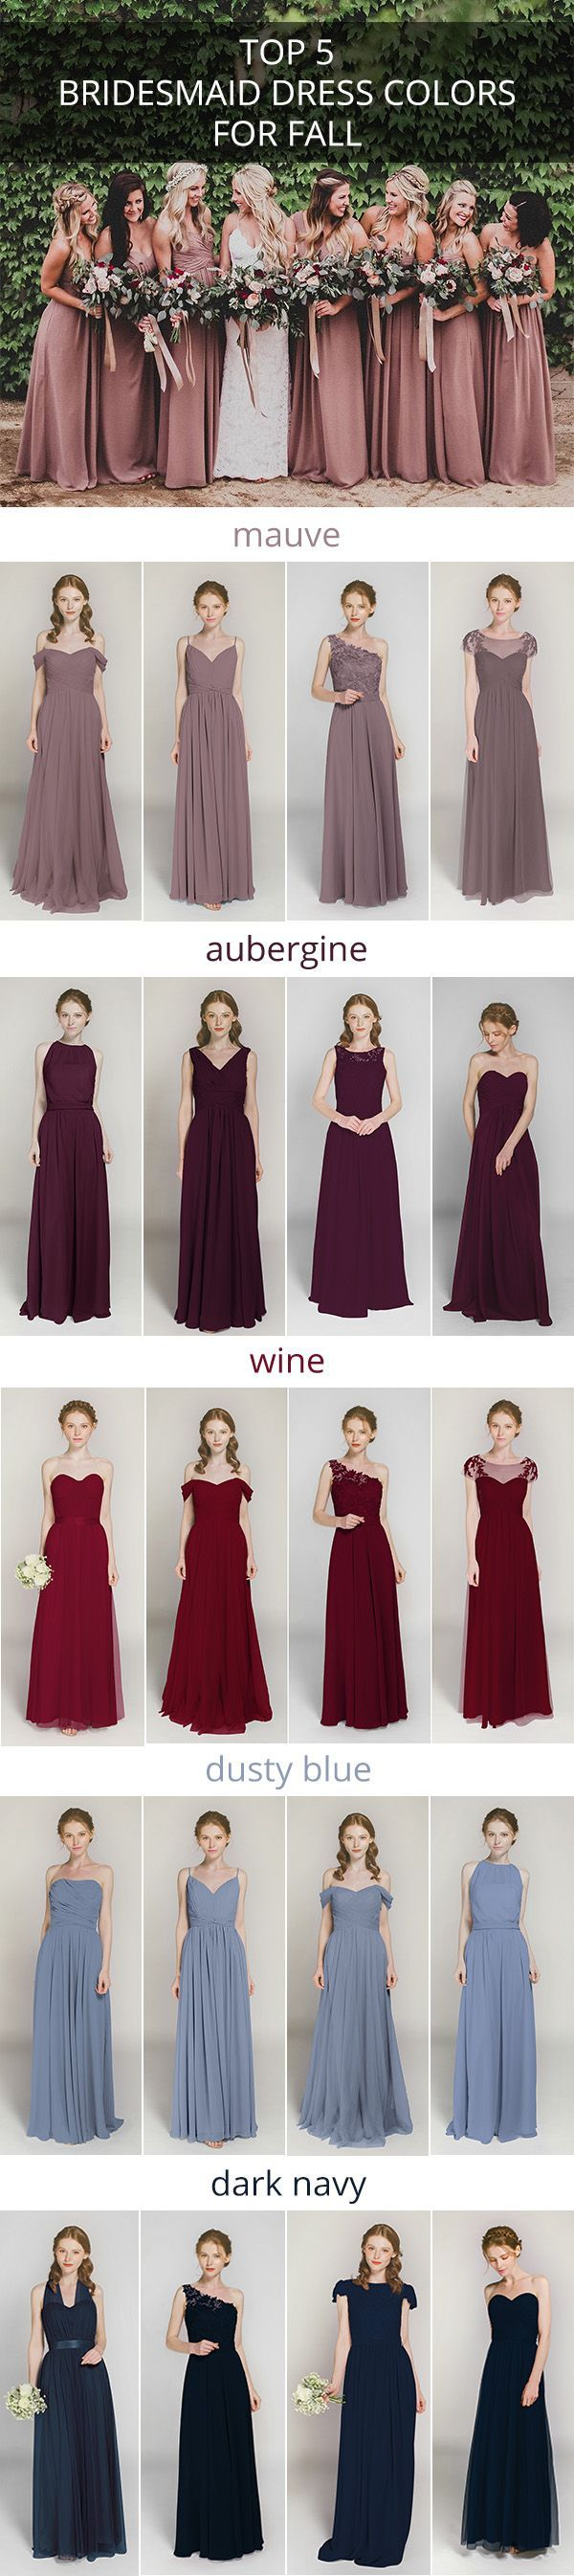 top 5 bridesmaid dress colors for fall weddings/Photo by @tyfrenchphoto